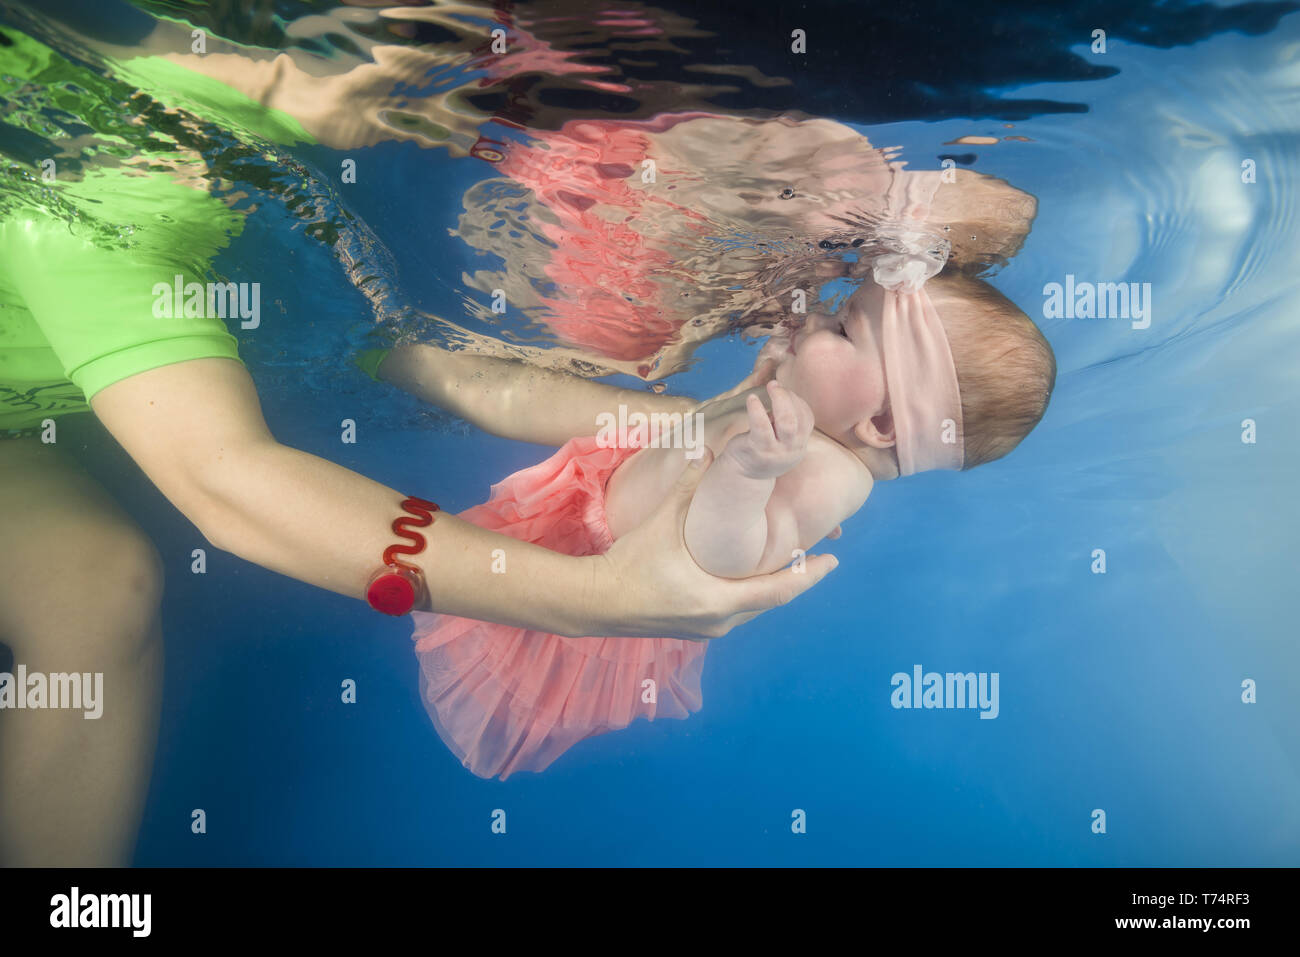 Odessa, Ukraine, Eastern Europe. 23rd Apr, 2019. Little baby girl learning to swim underwater in a swimming pool, mother holding the child. Healthy family lifestyle and children water sports activity. Child development, disease prevention Credit: Andrey Nekrasov/ZUMA Wire/Alamy Live News - Stock Image